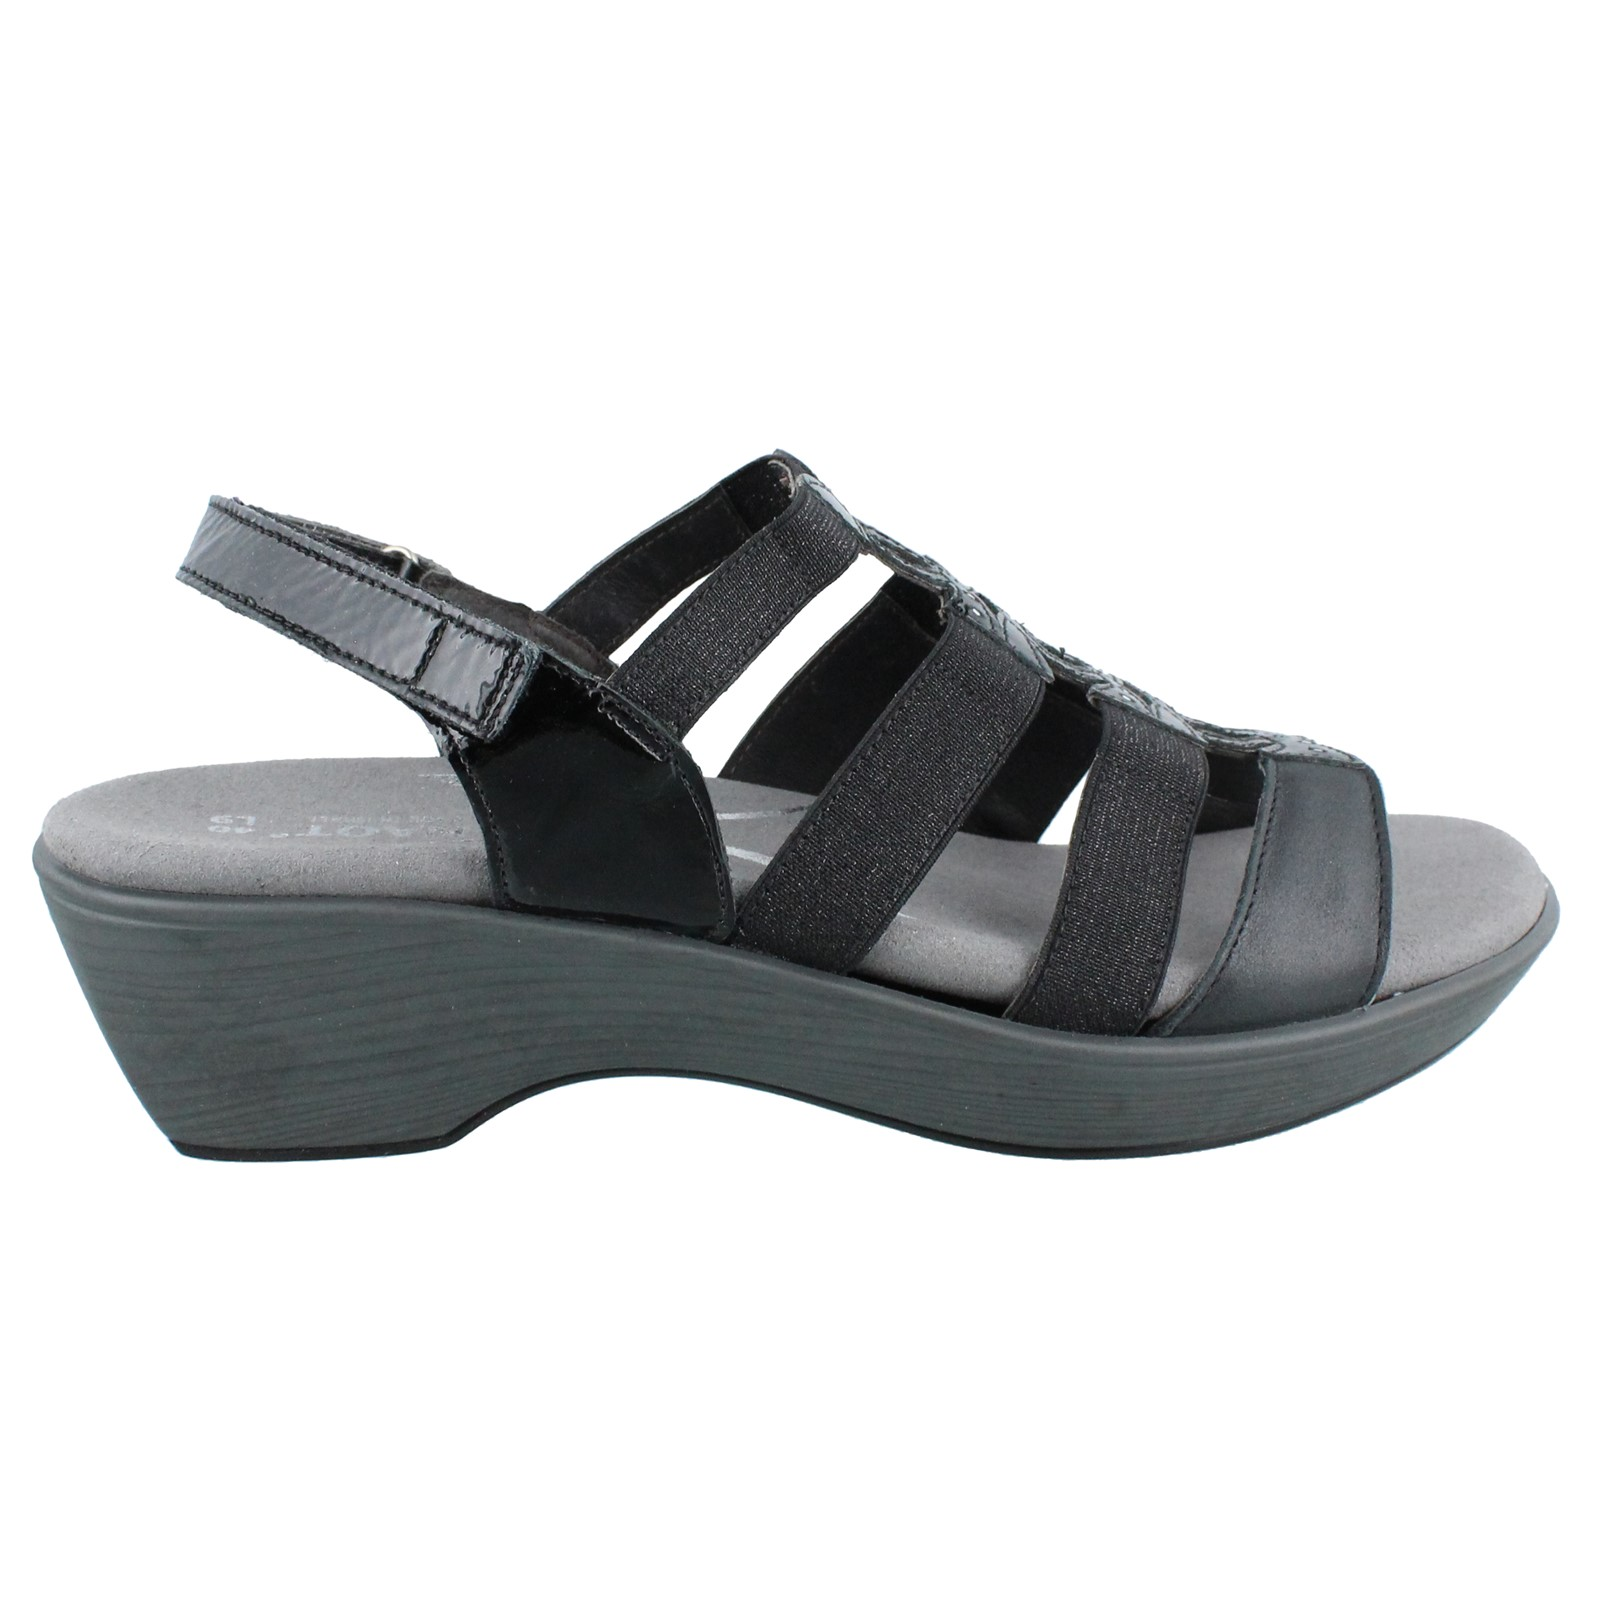 Women's Naot, Malbec low heel Sandals